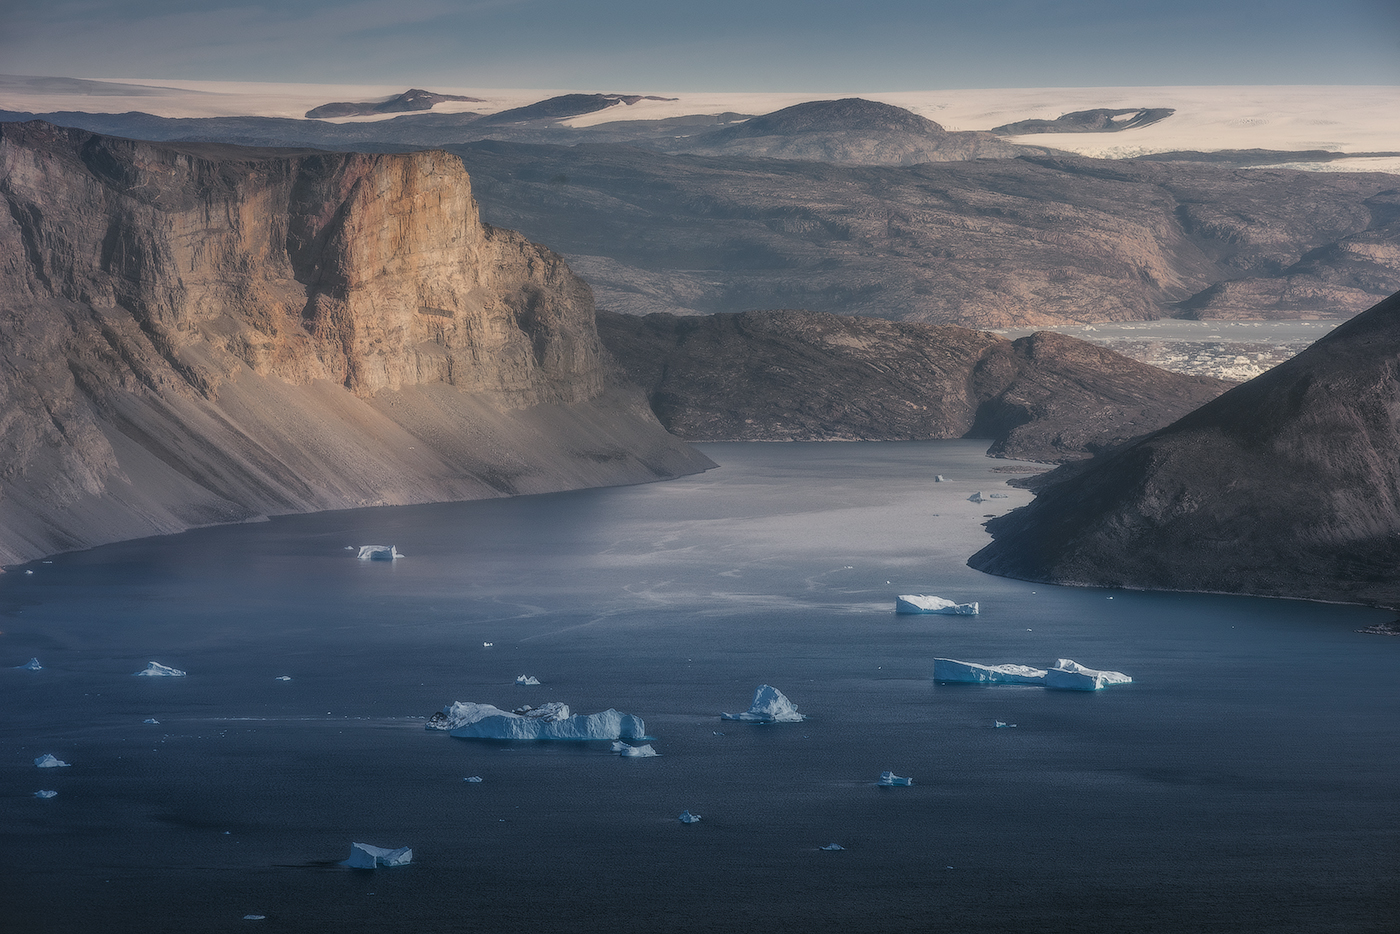 Greenland Sailing Trip | 10 Day Photography Workshop - day 4